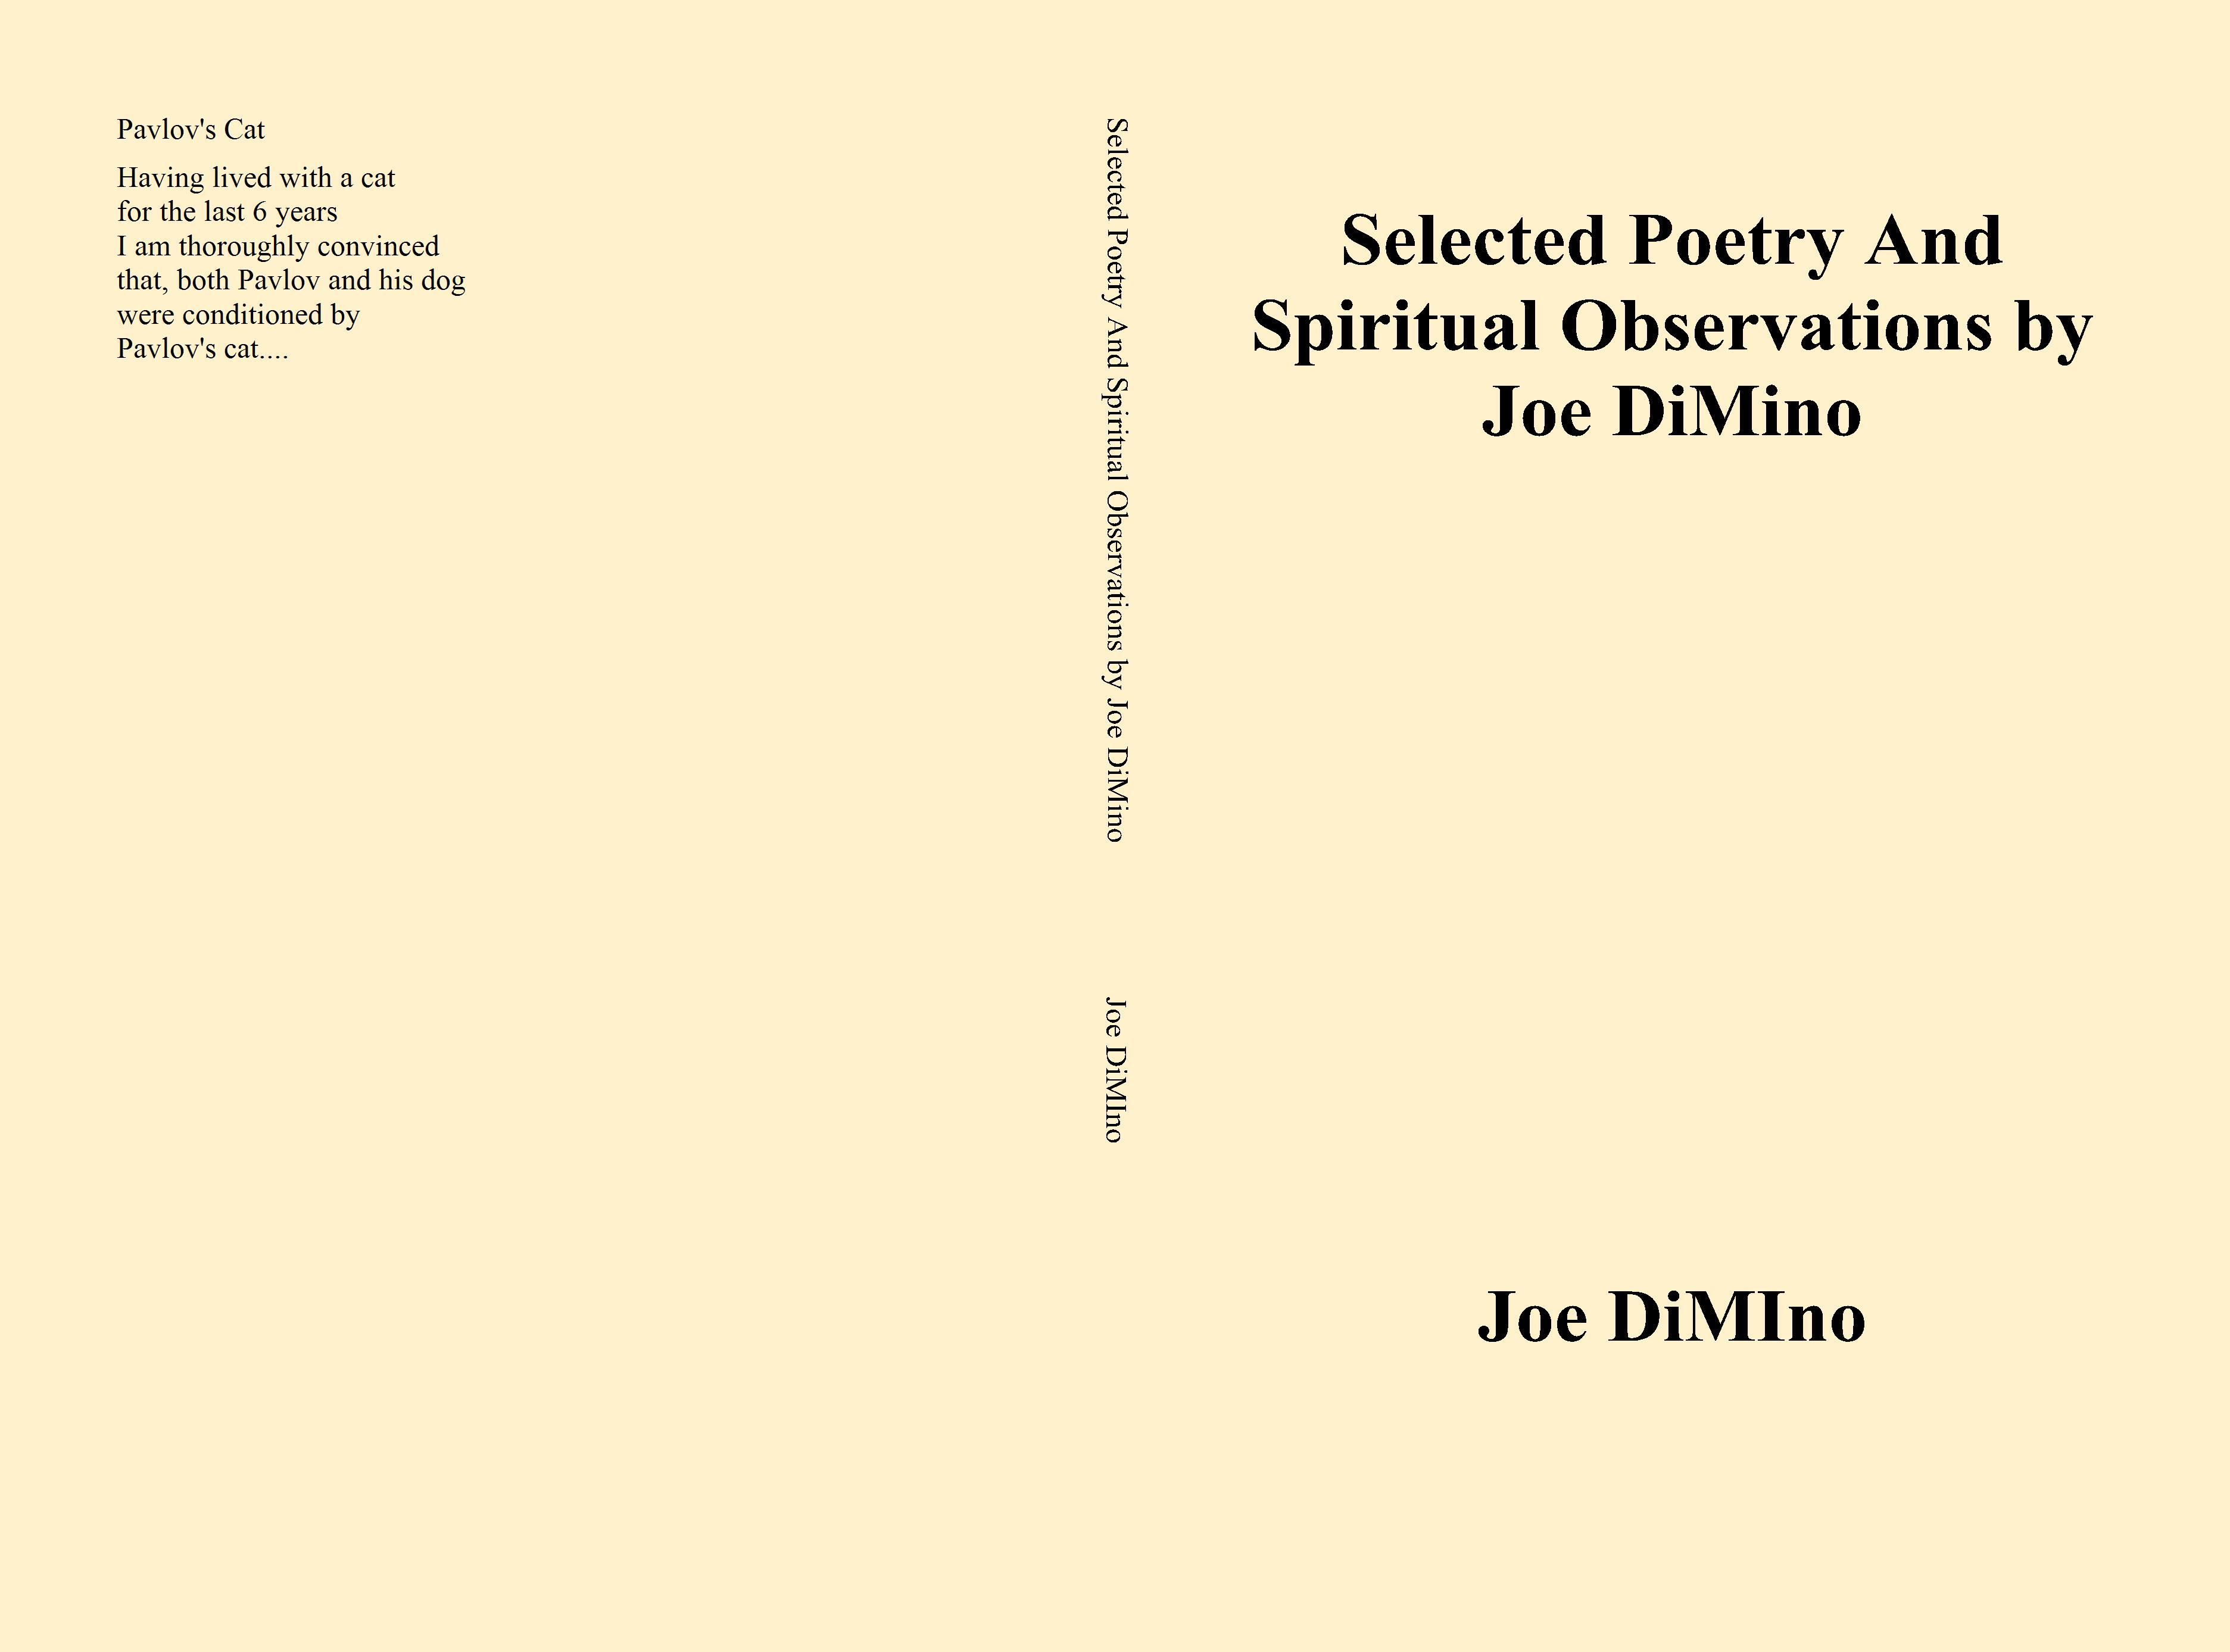 Selected Poetry And Spiritual Observations by Joe DiMino cover image